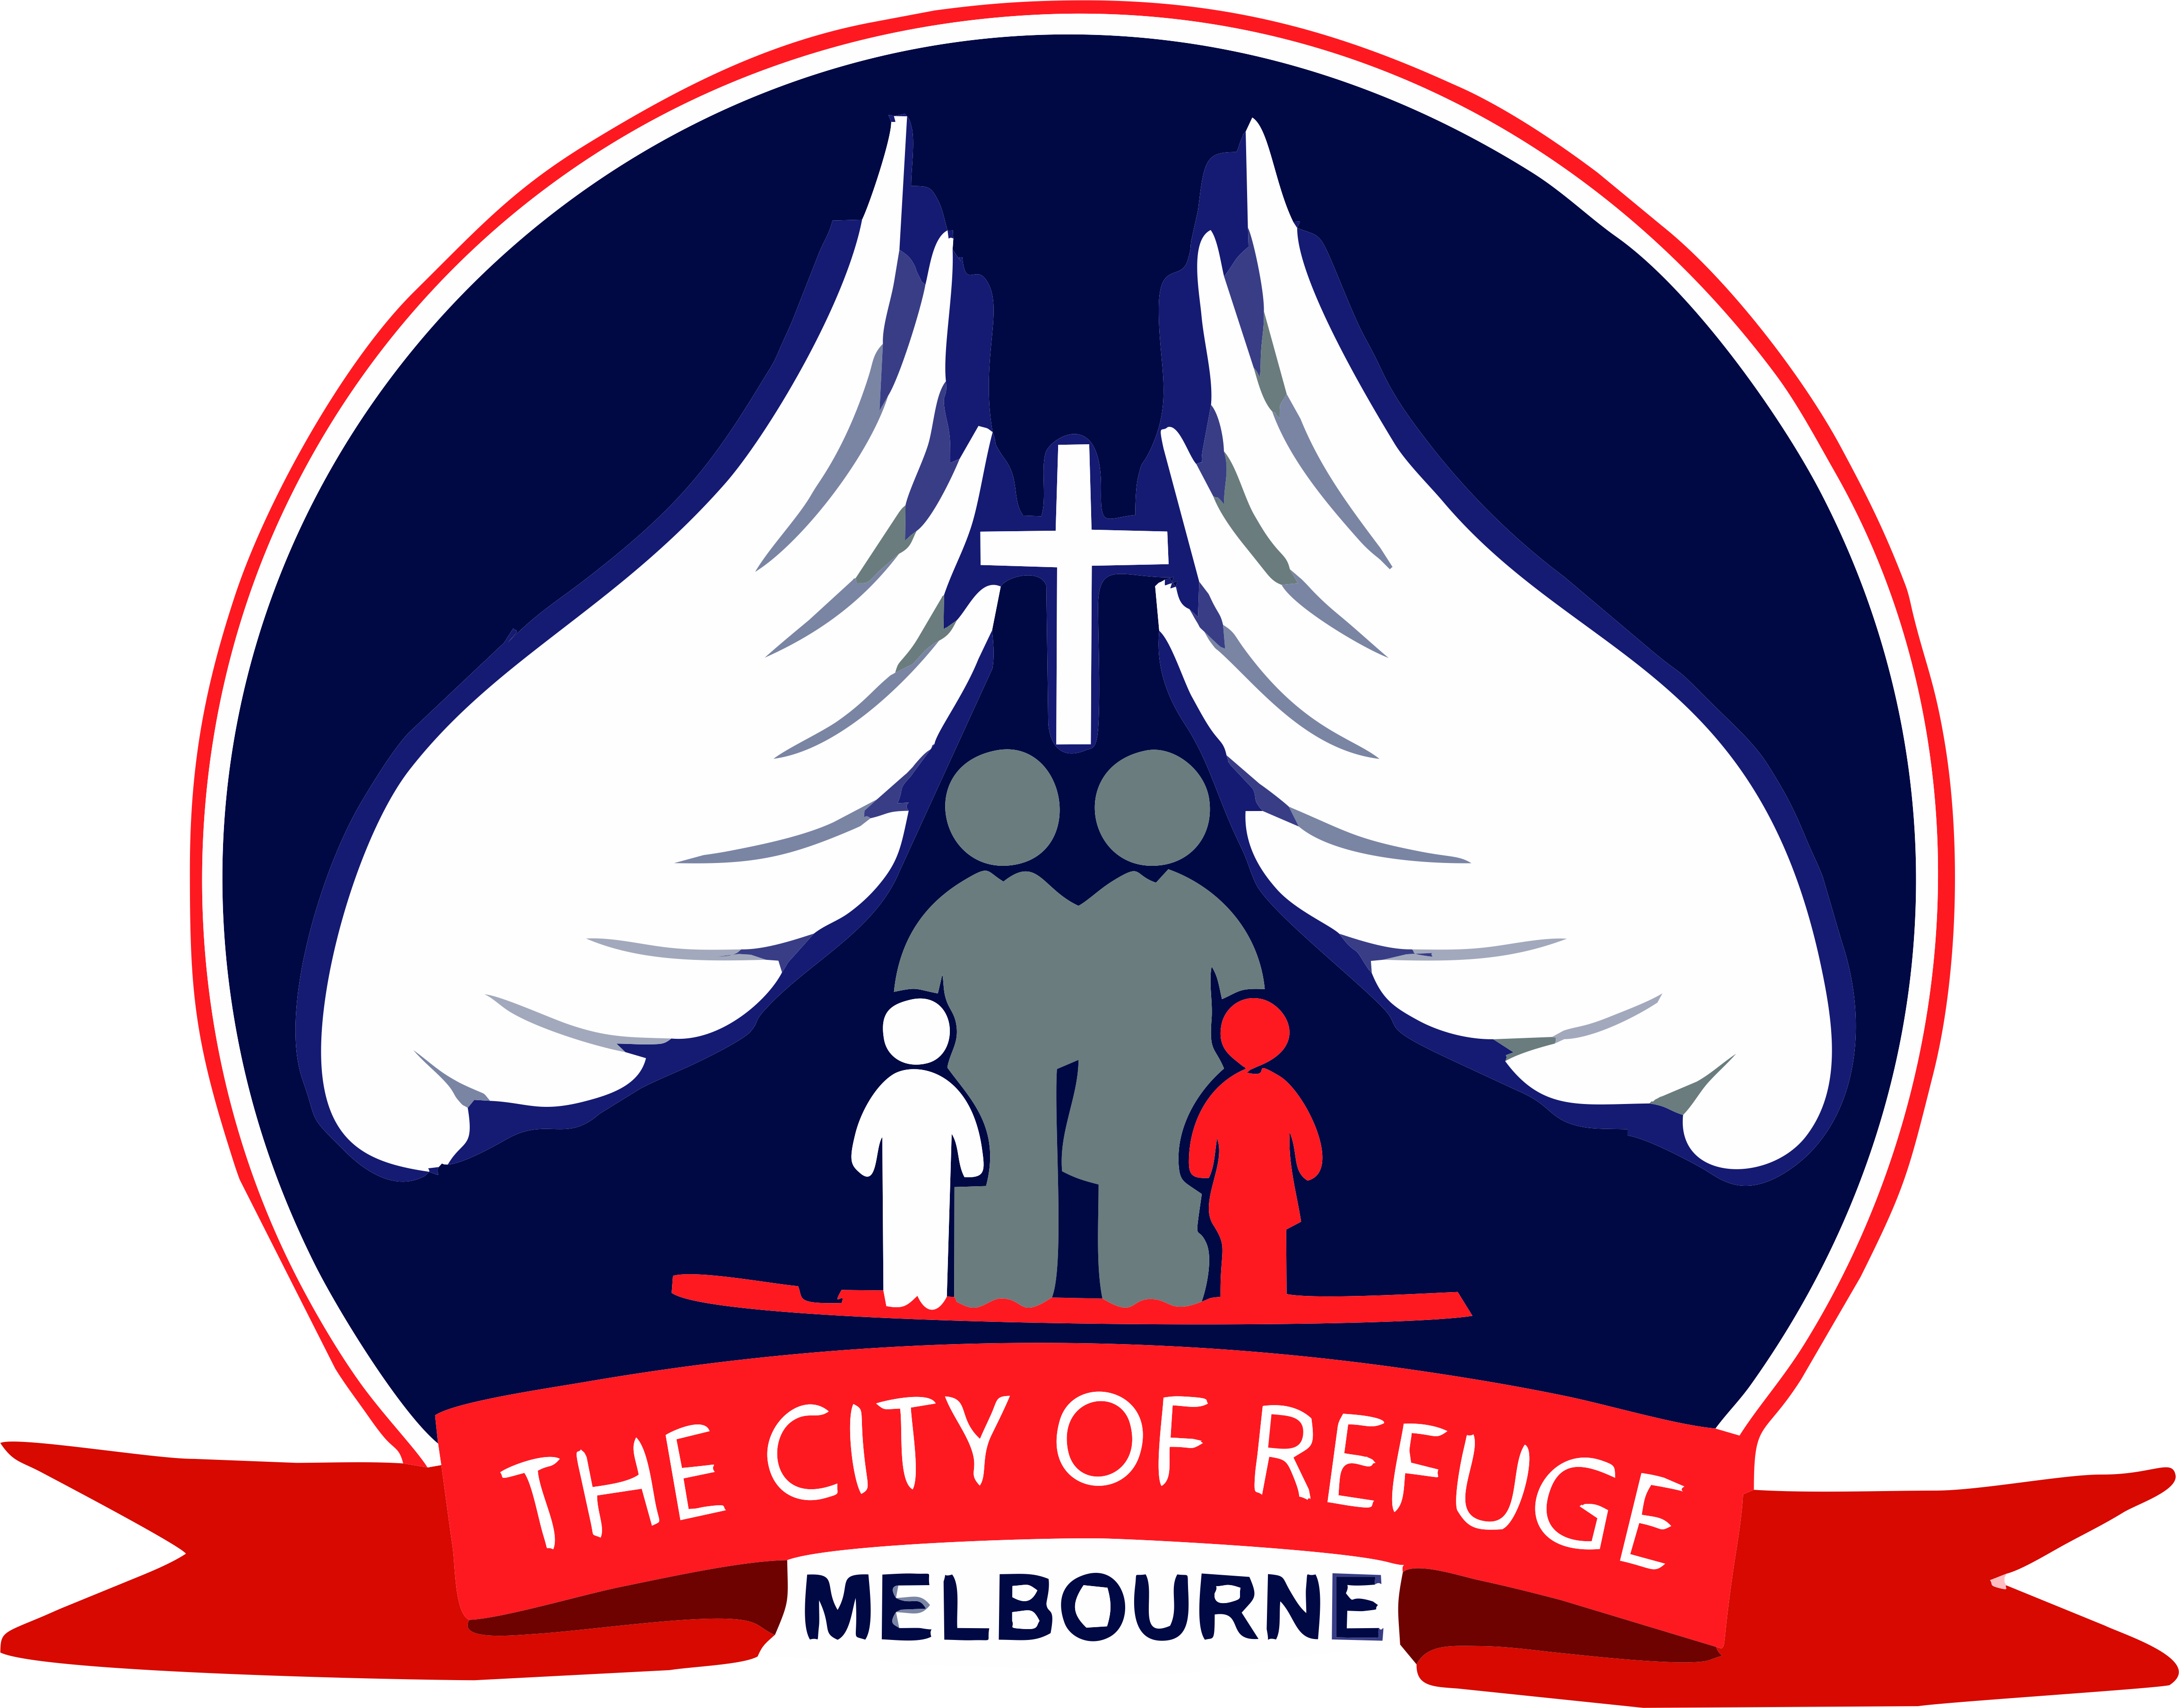 The City of Refuge -  Melbourne